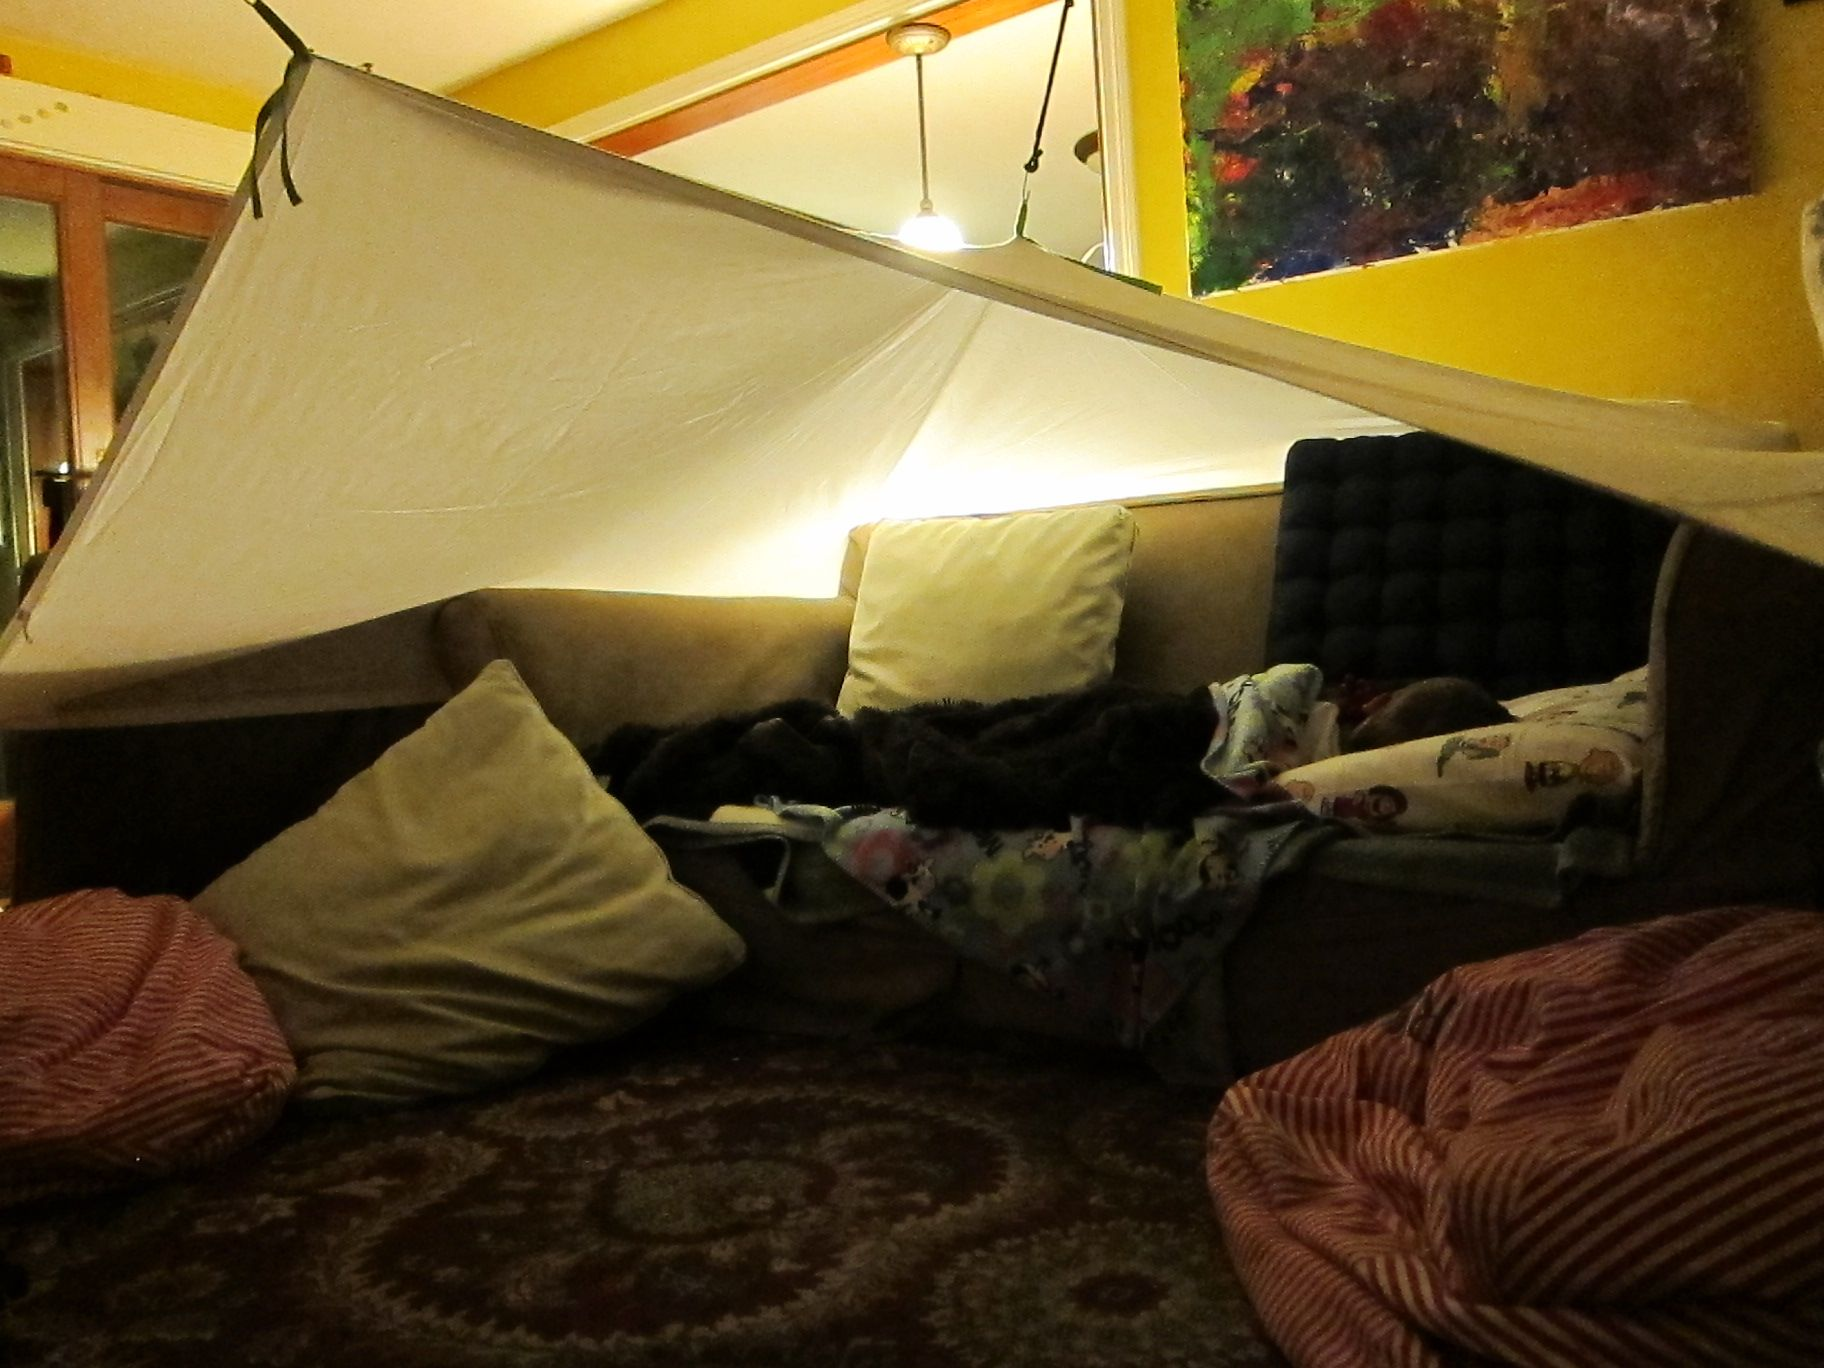 Couch fort diy kids tent diy tent